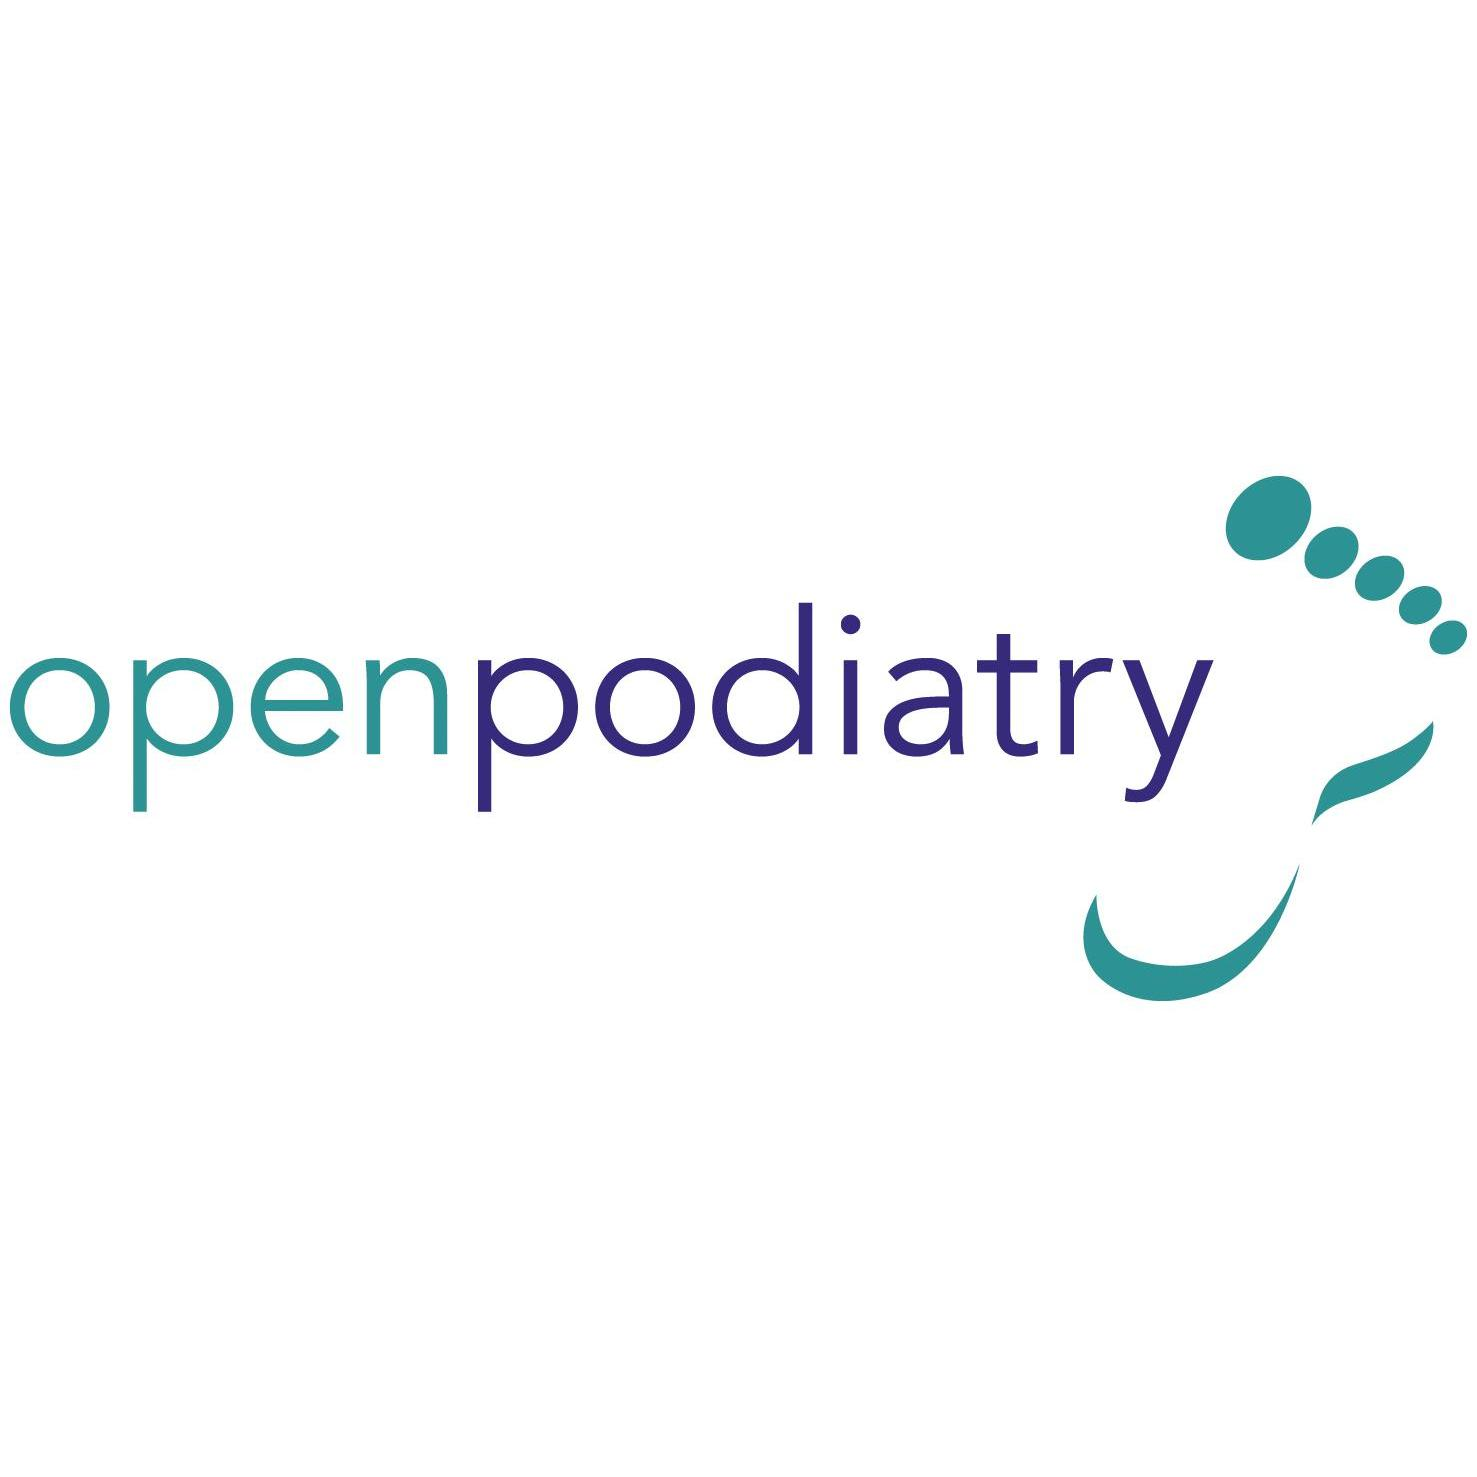 Open Podiatry - Bradford, West Yorkshire BD1 3RG - 07900 904725 | ShowMeLocal.com